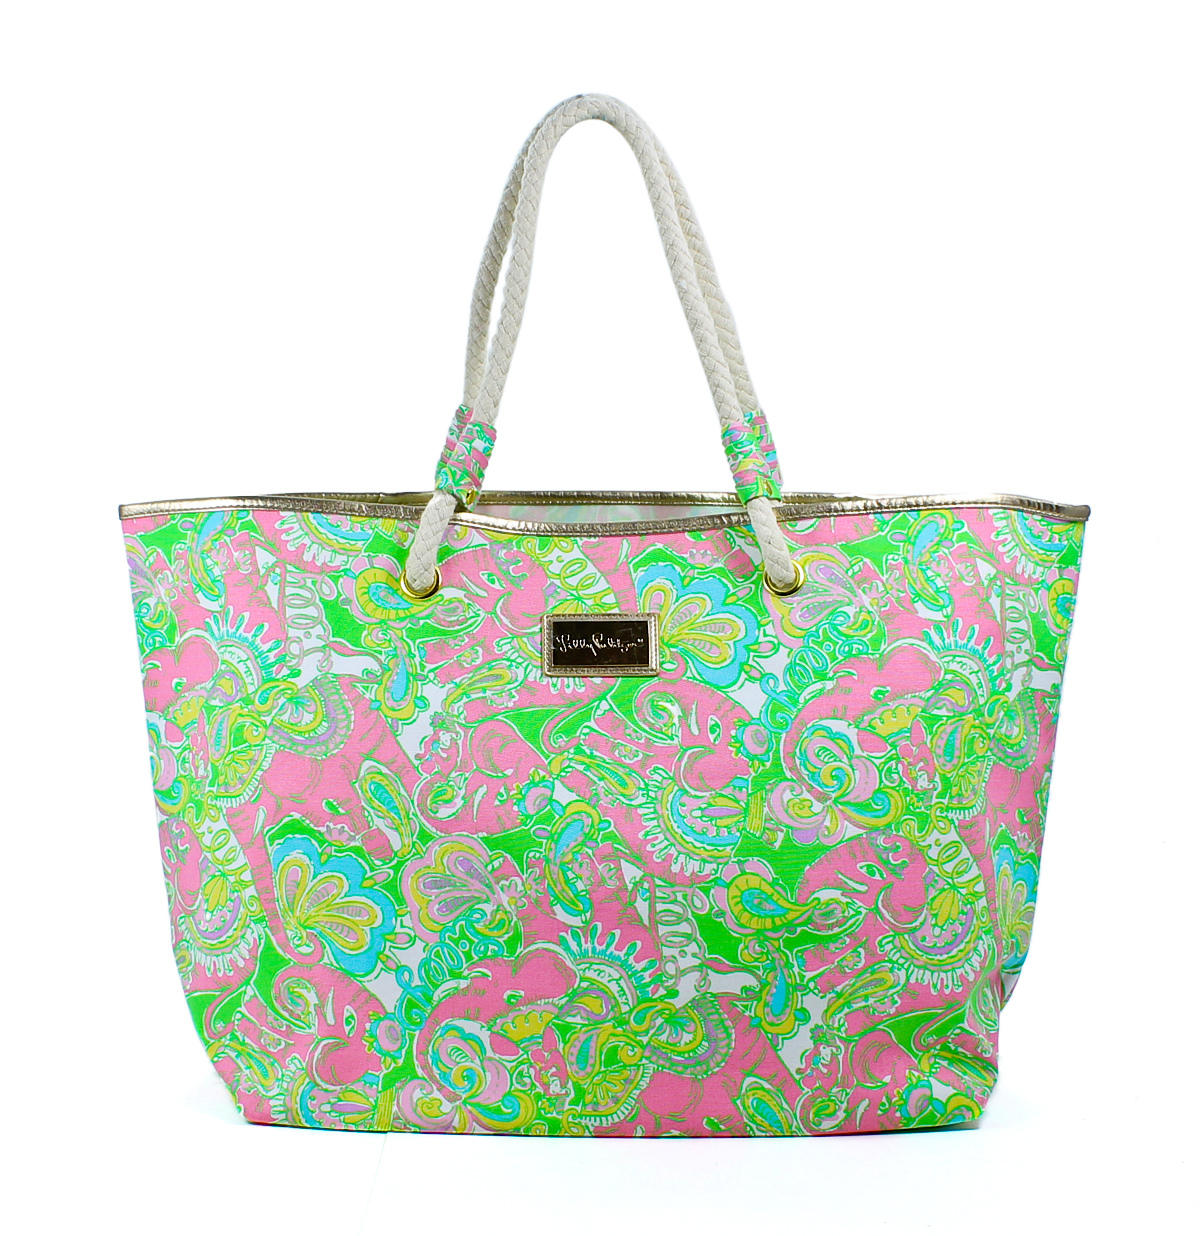 Lilly Pulitzer Multi Mini Chin Chin Shoreline Tote Bag